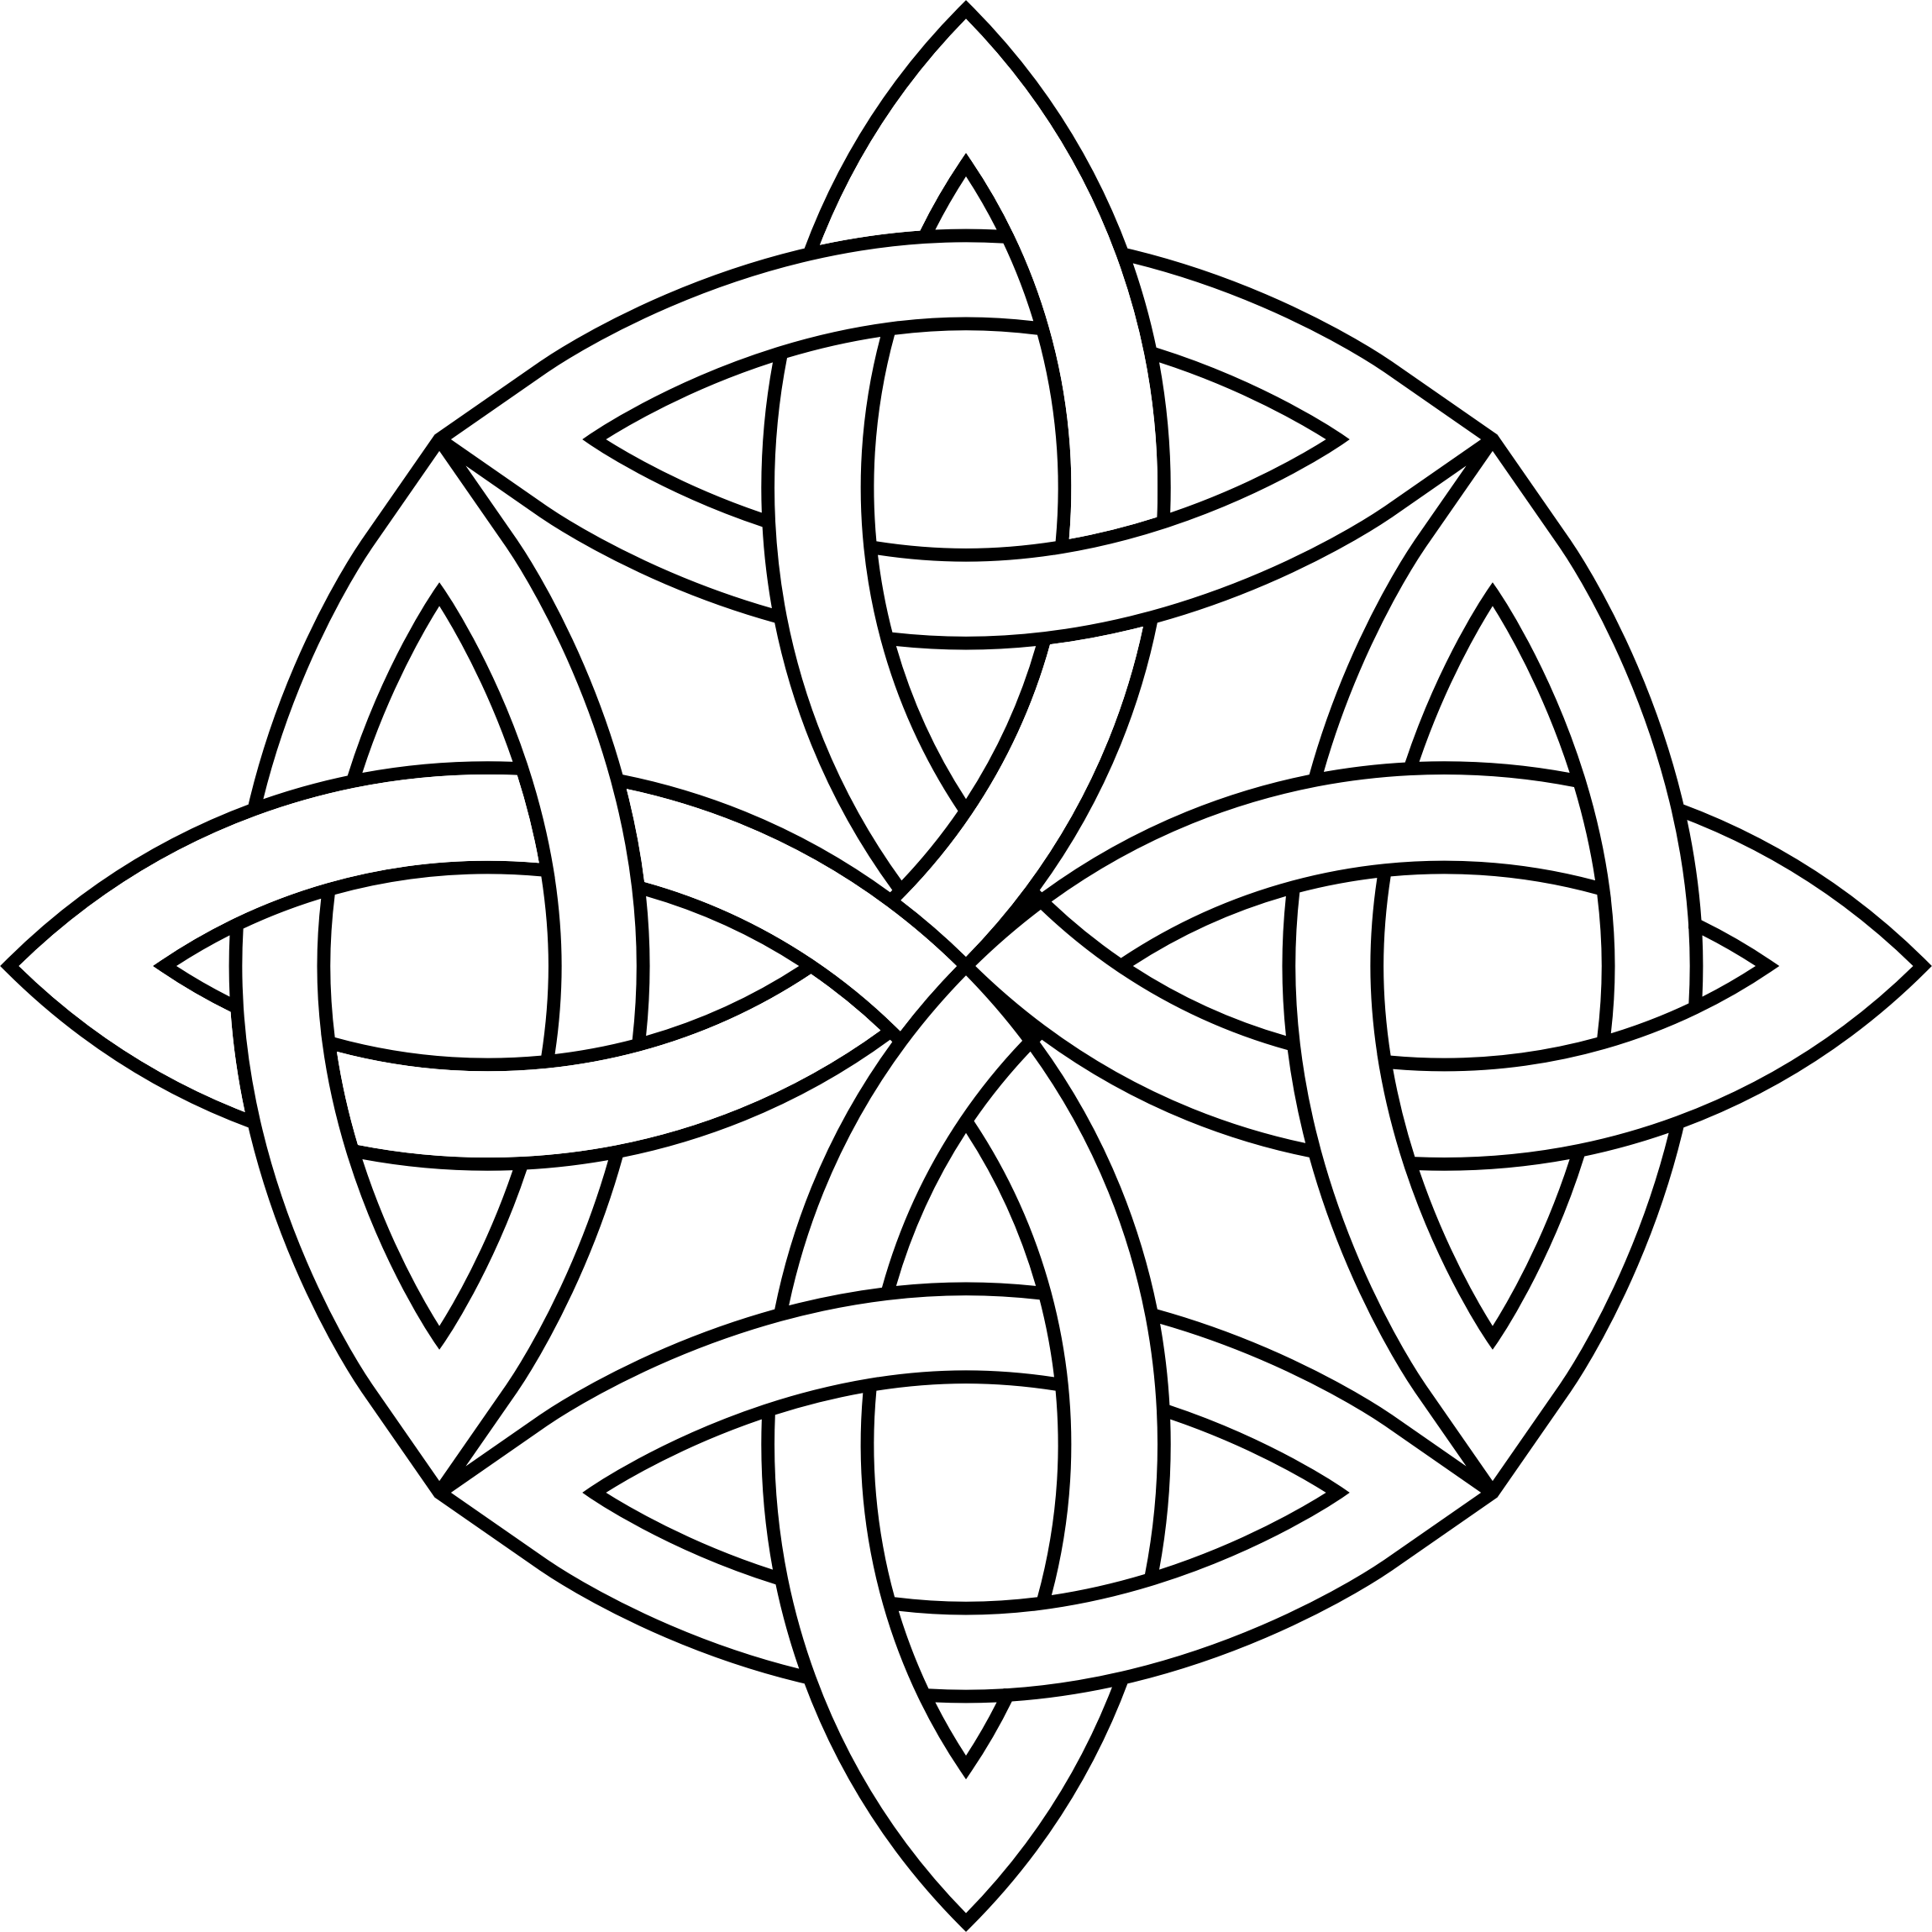 Celtic cross clipart black and white clip art free library Celtic Knots Drawing at GetDrawings.com | Free for personal use ... clip art free library